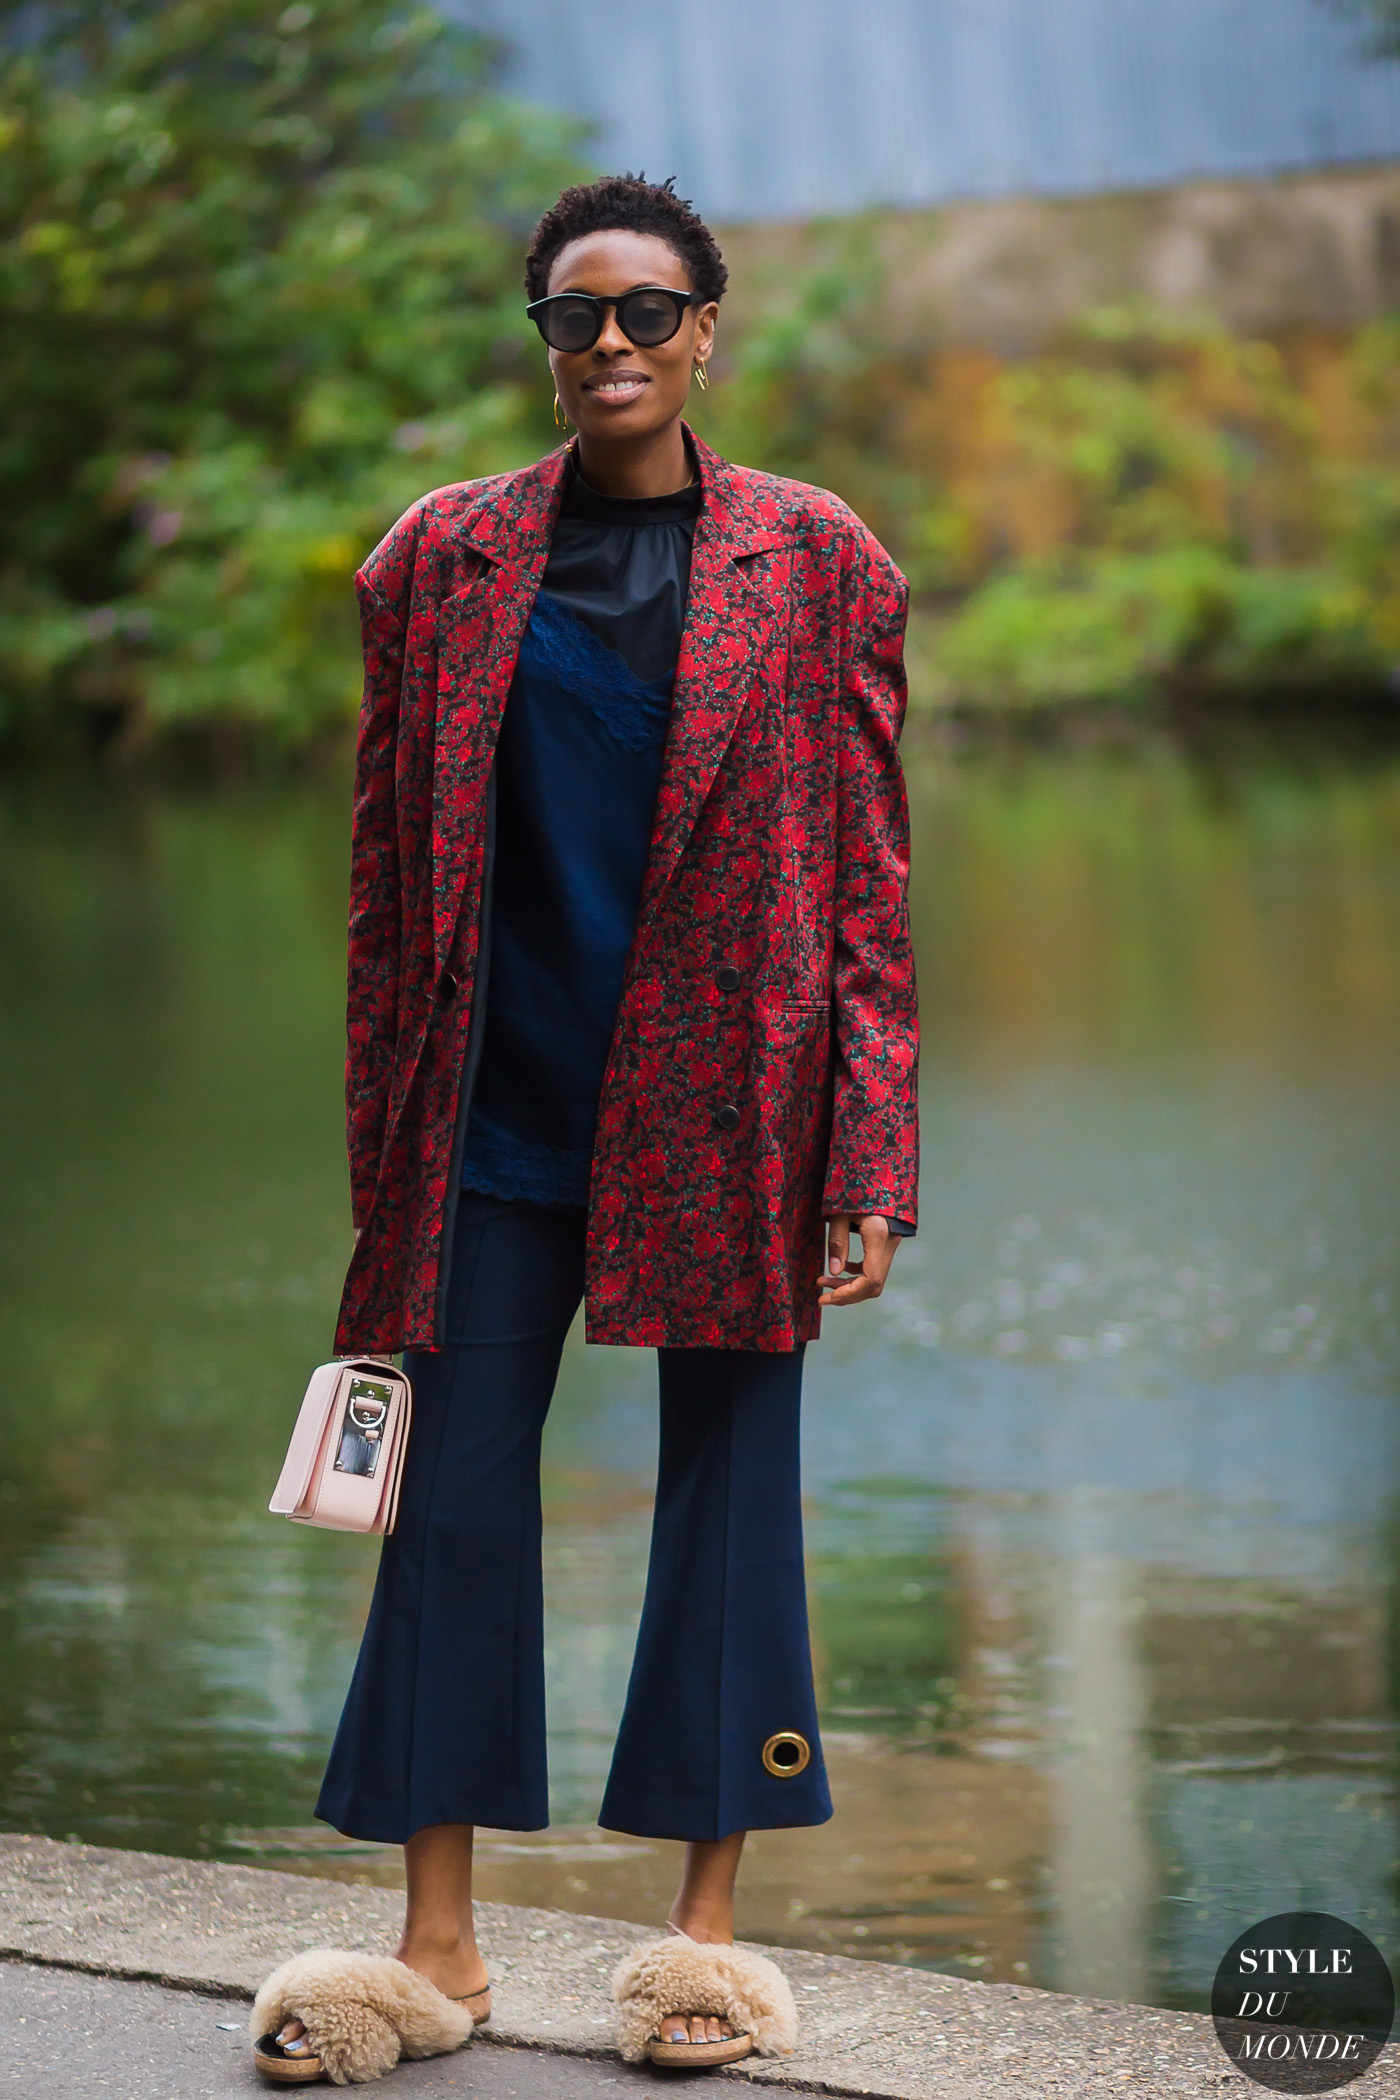 donna-wallace-by-styledumonde-street-style-fashion-photography